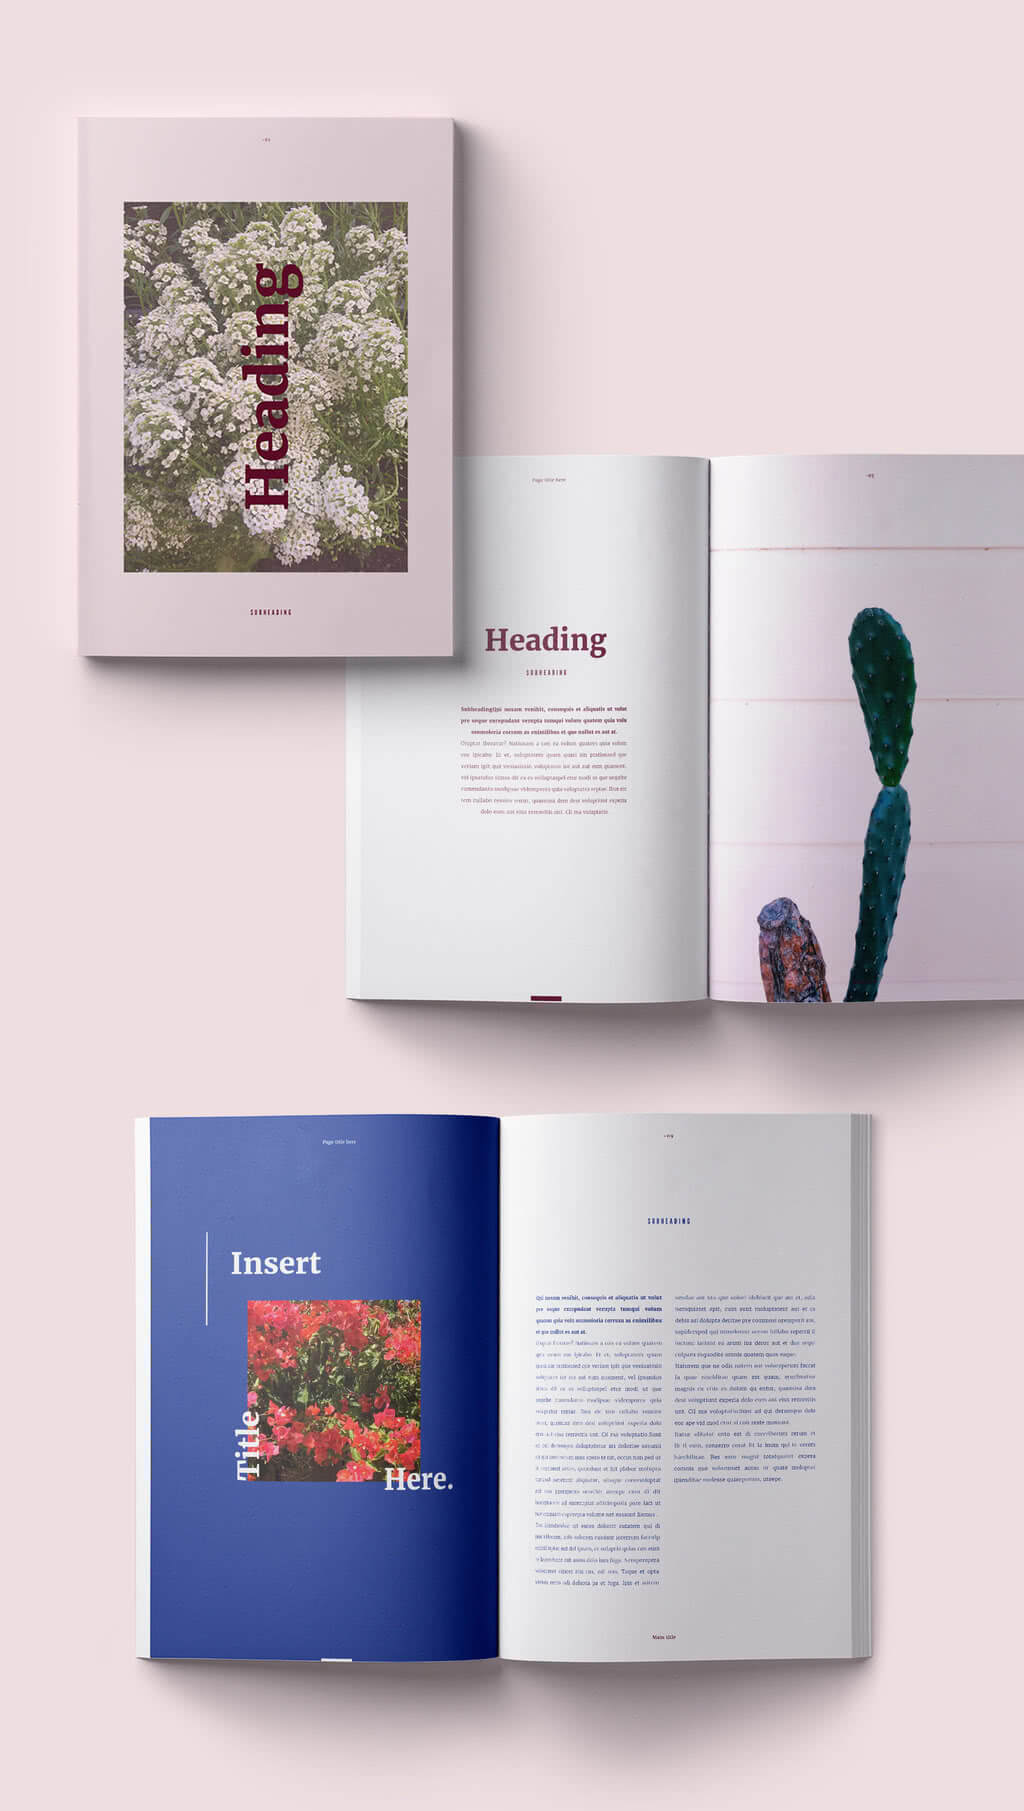 75 Fresh Indesign Templates And Where To Find More within Brochure Templates Free Download Indesign